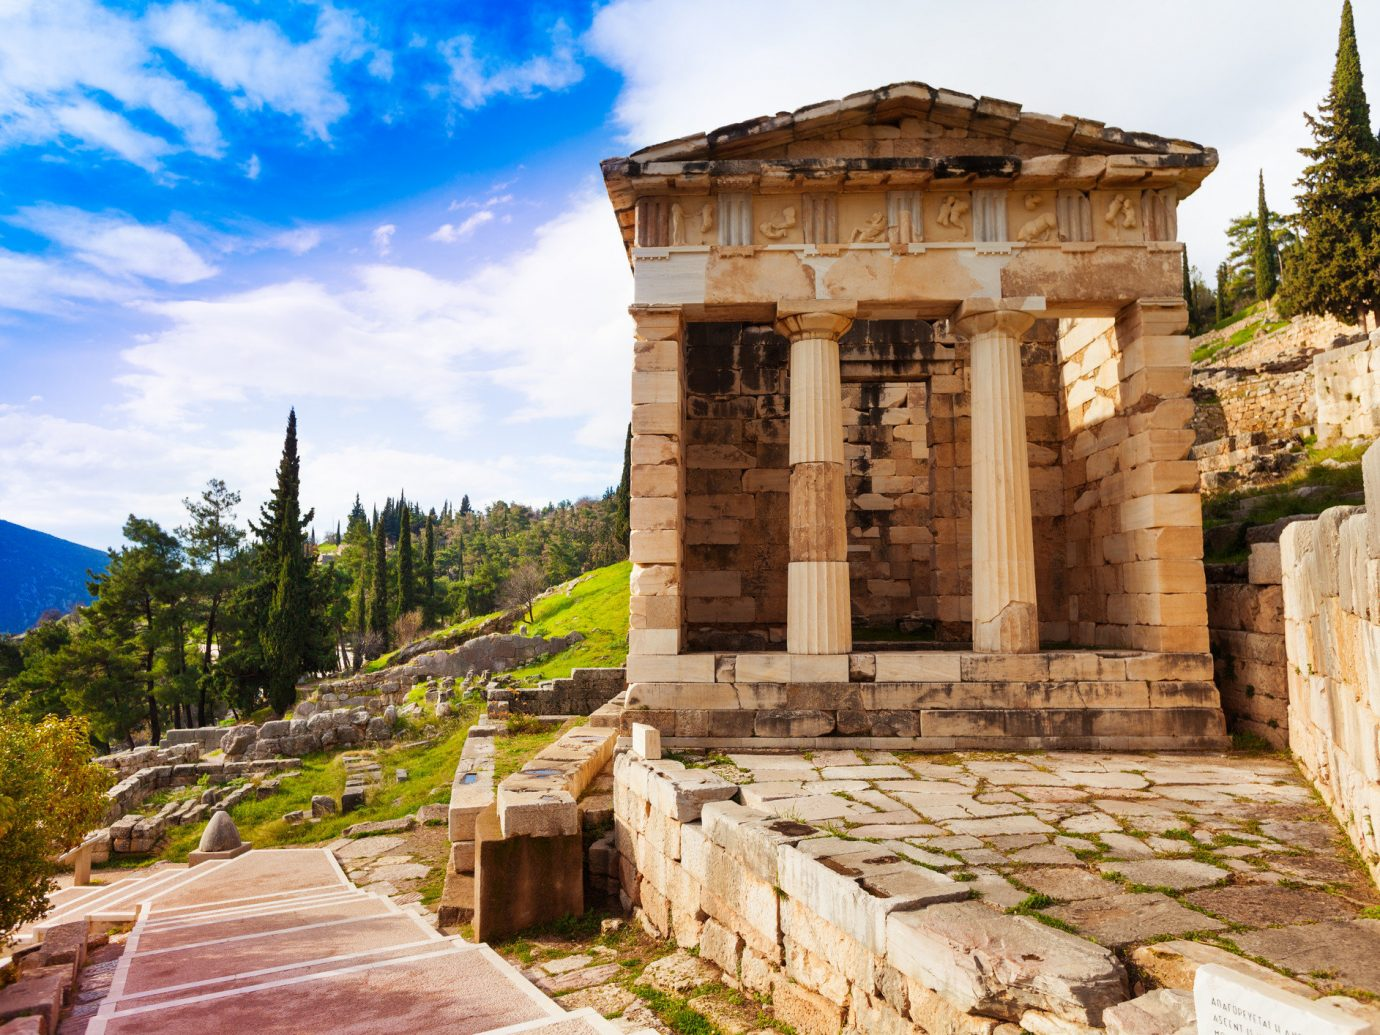 Arts + Culture Landmarks Trip Ideas sky outdoor historic site building archaeological site ancient history Ruins temple tourism tourist attraction history stone facade tree ancient greek temple estate ruin